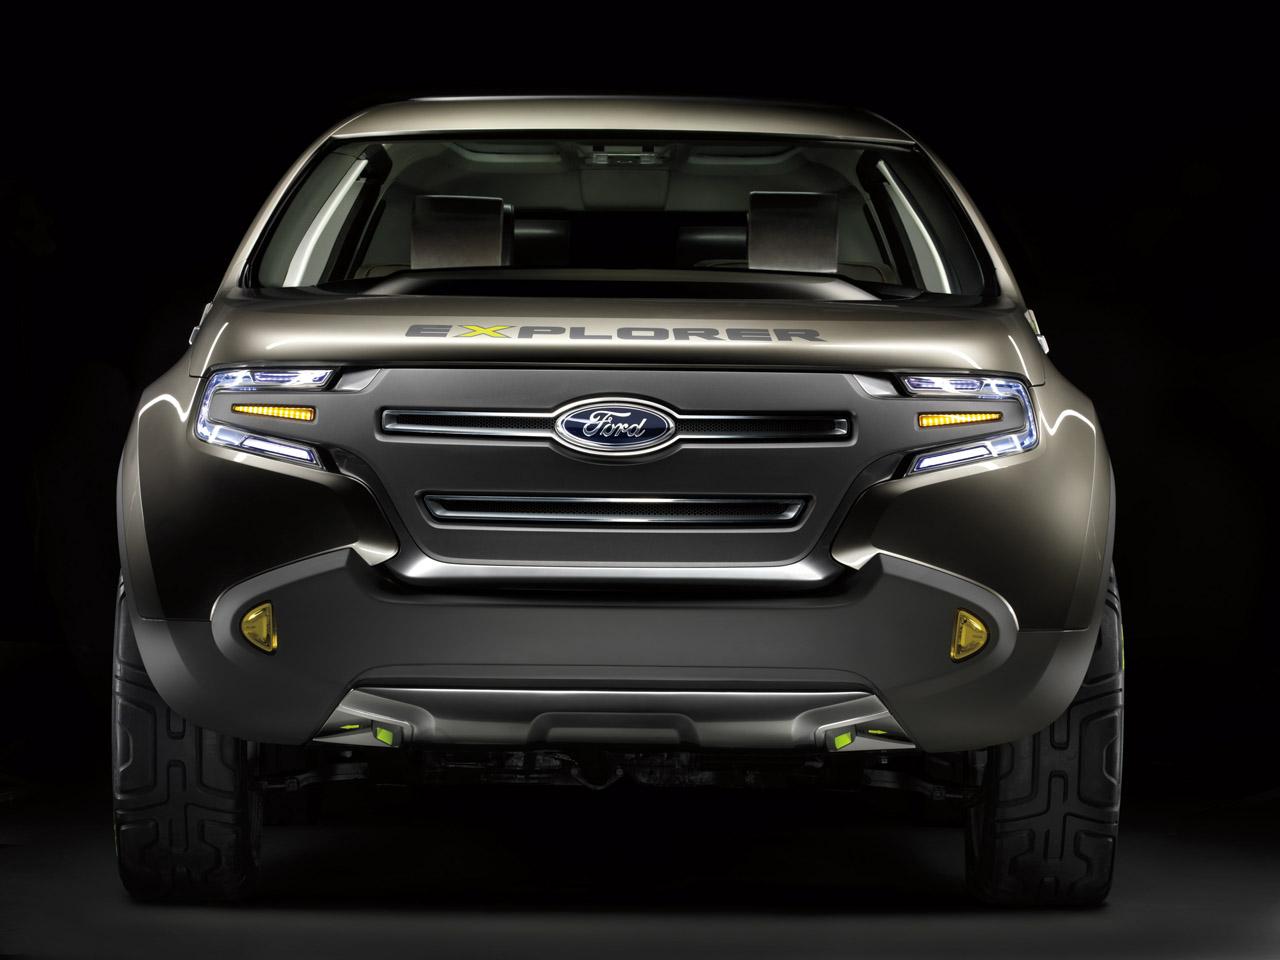 Cars Picture Info: ford explorer wallpaper